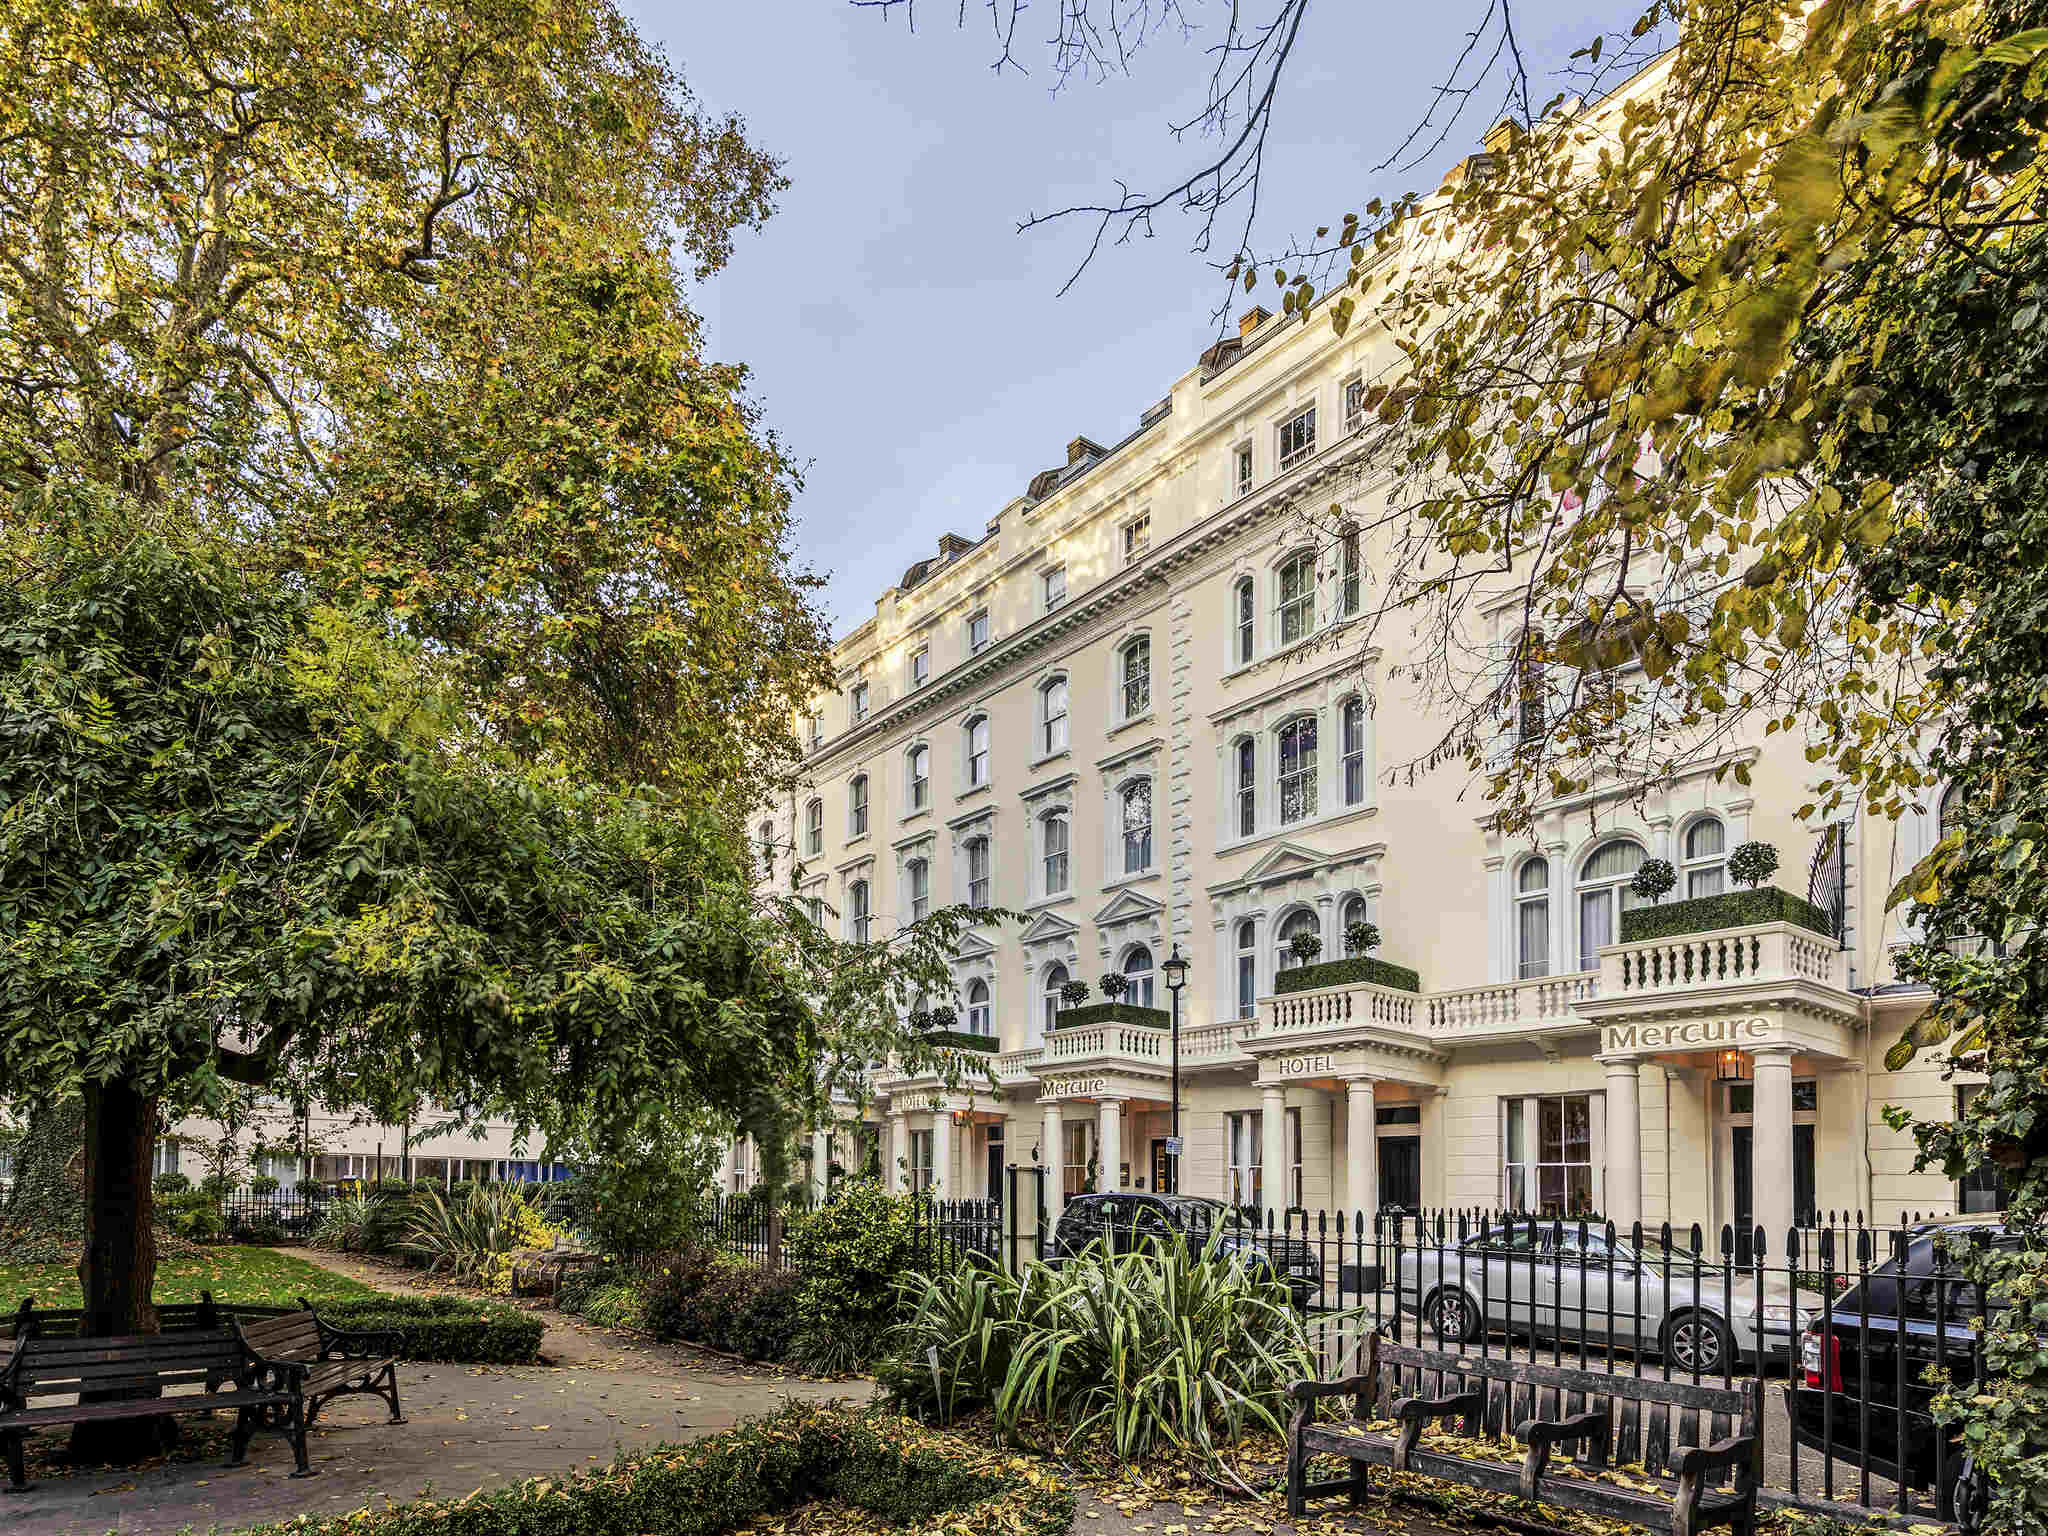 Hotell – Hotell Mercure London Hyde Park